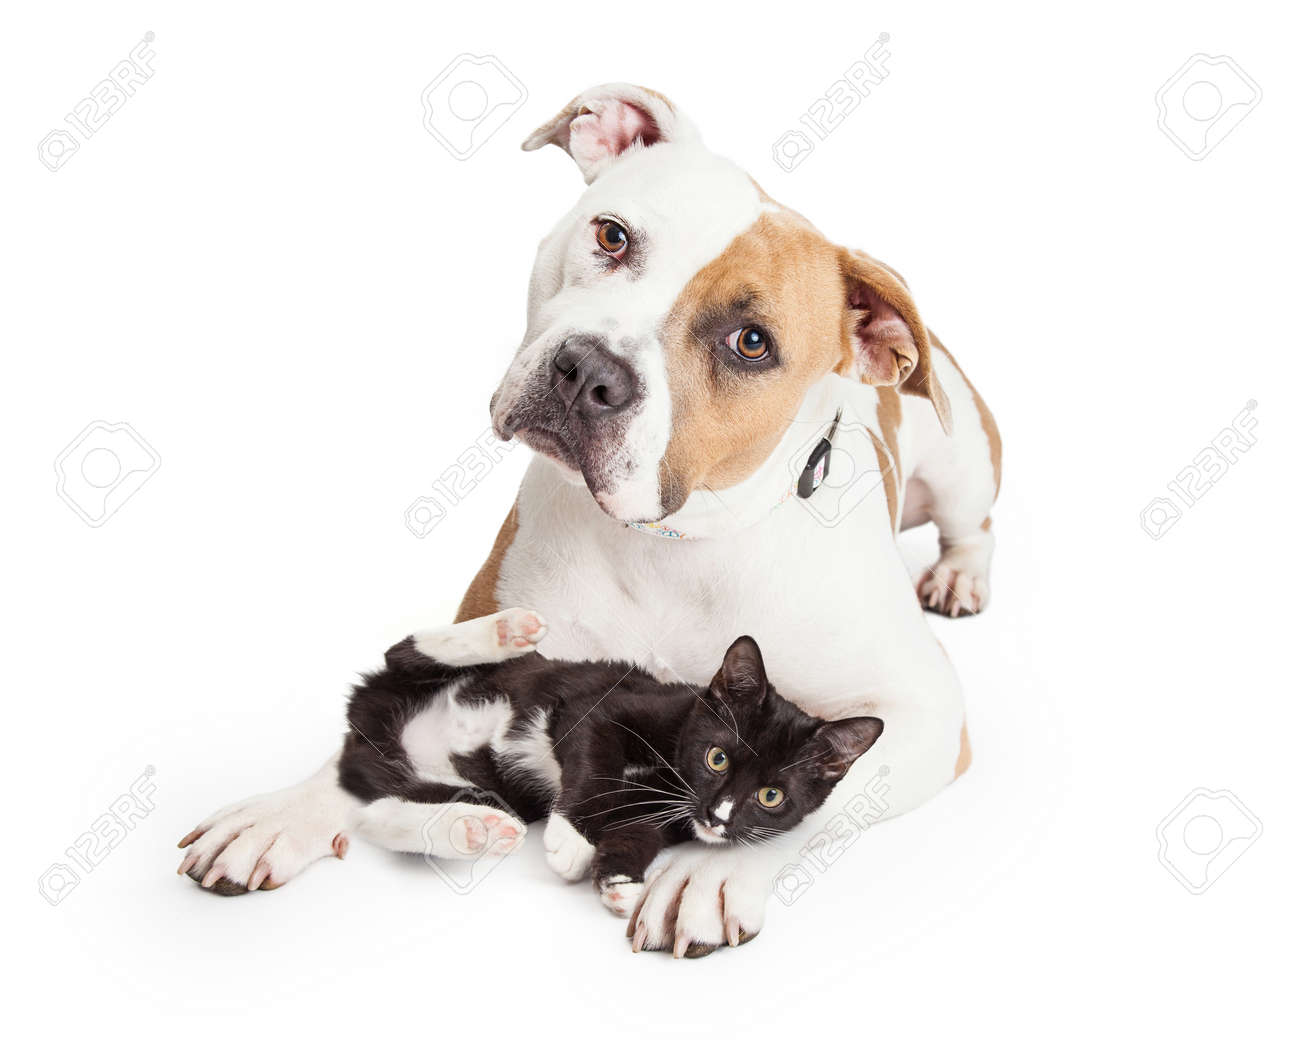 Beautiful and friendly Pit Bull dog with a playful little kitten laying across her legs - 46042186